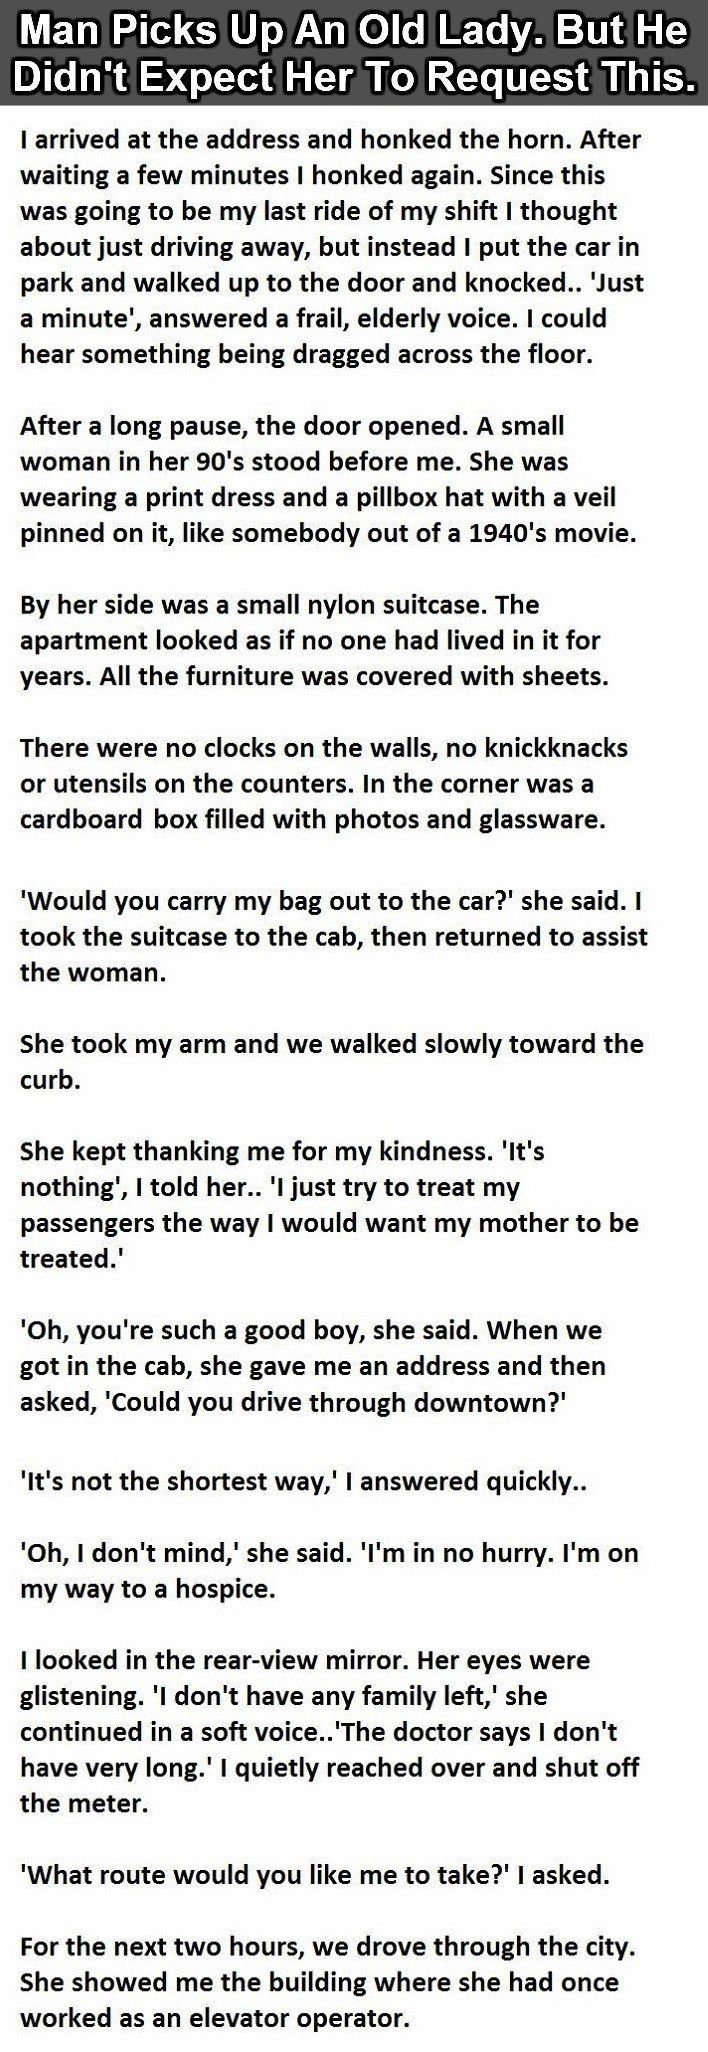 This Cab Driver Picks Up An Older Lady And She Makes One Last Special Request